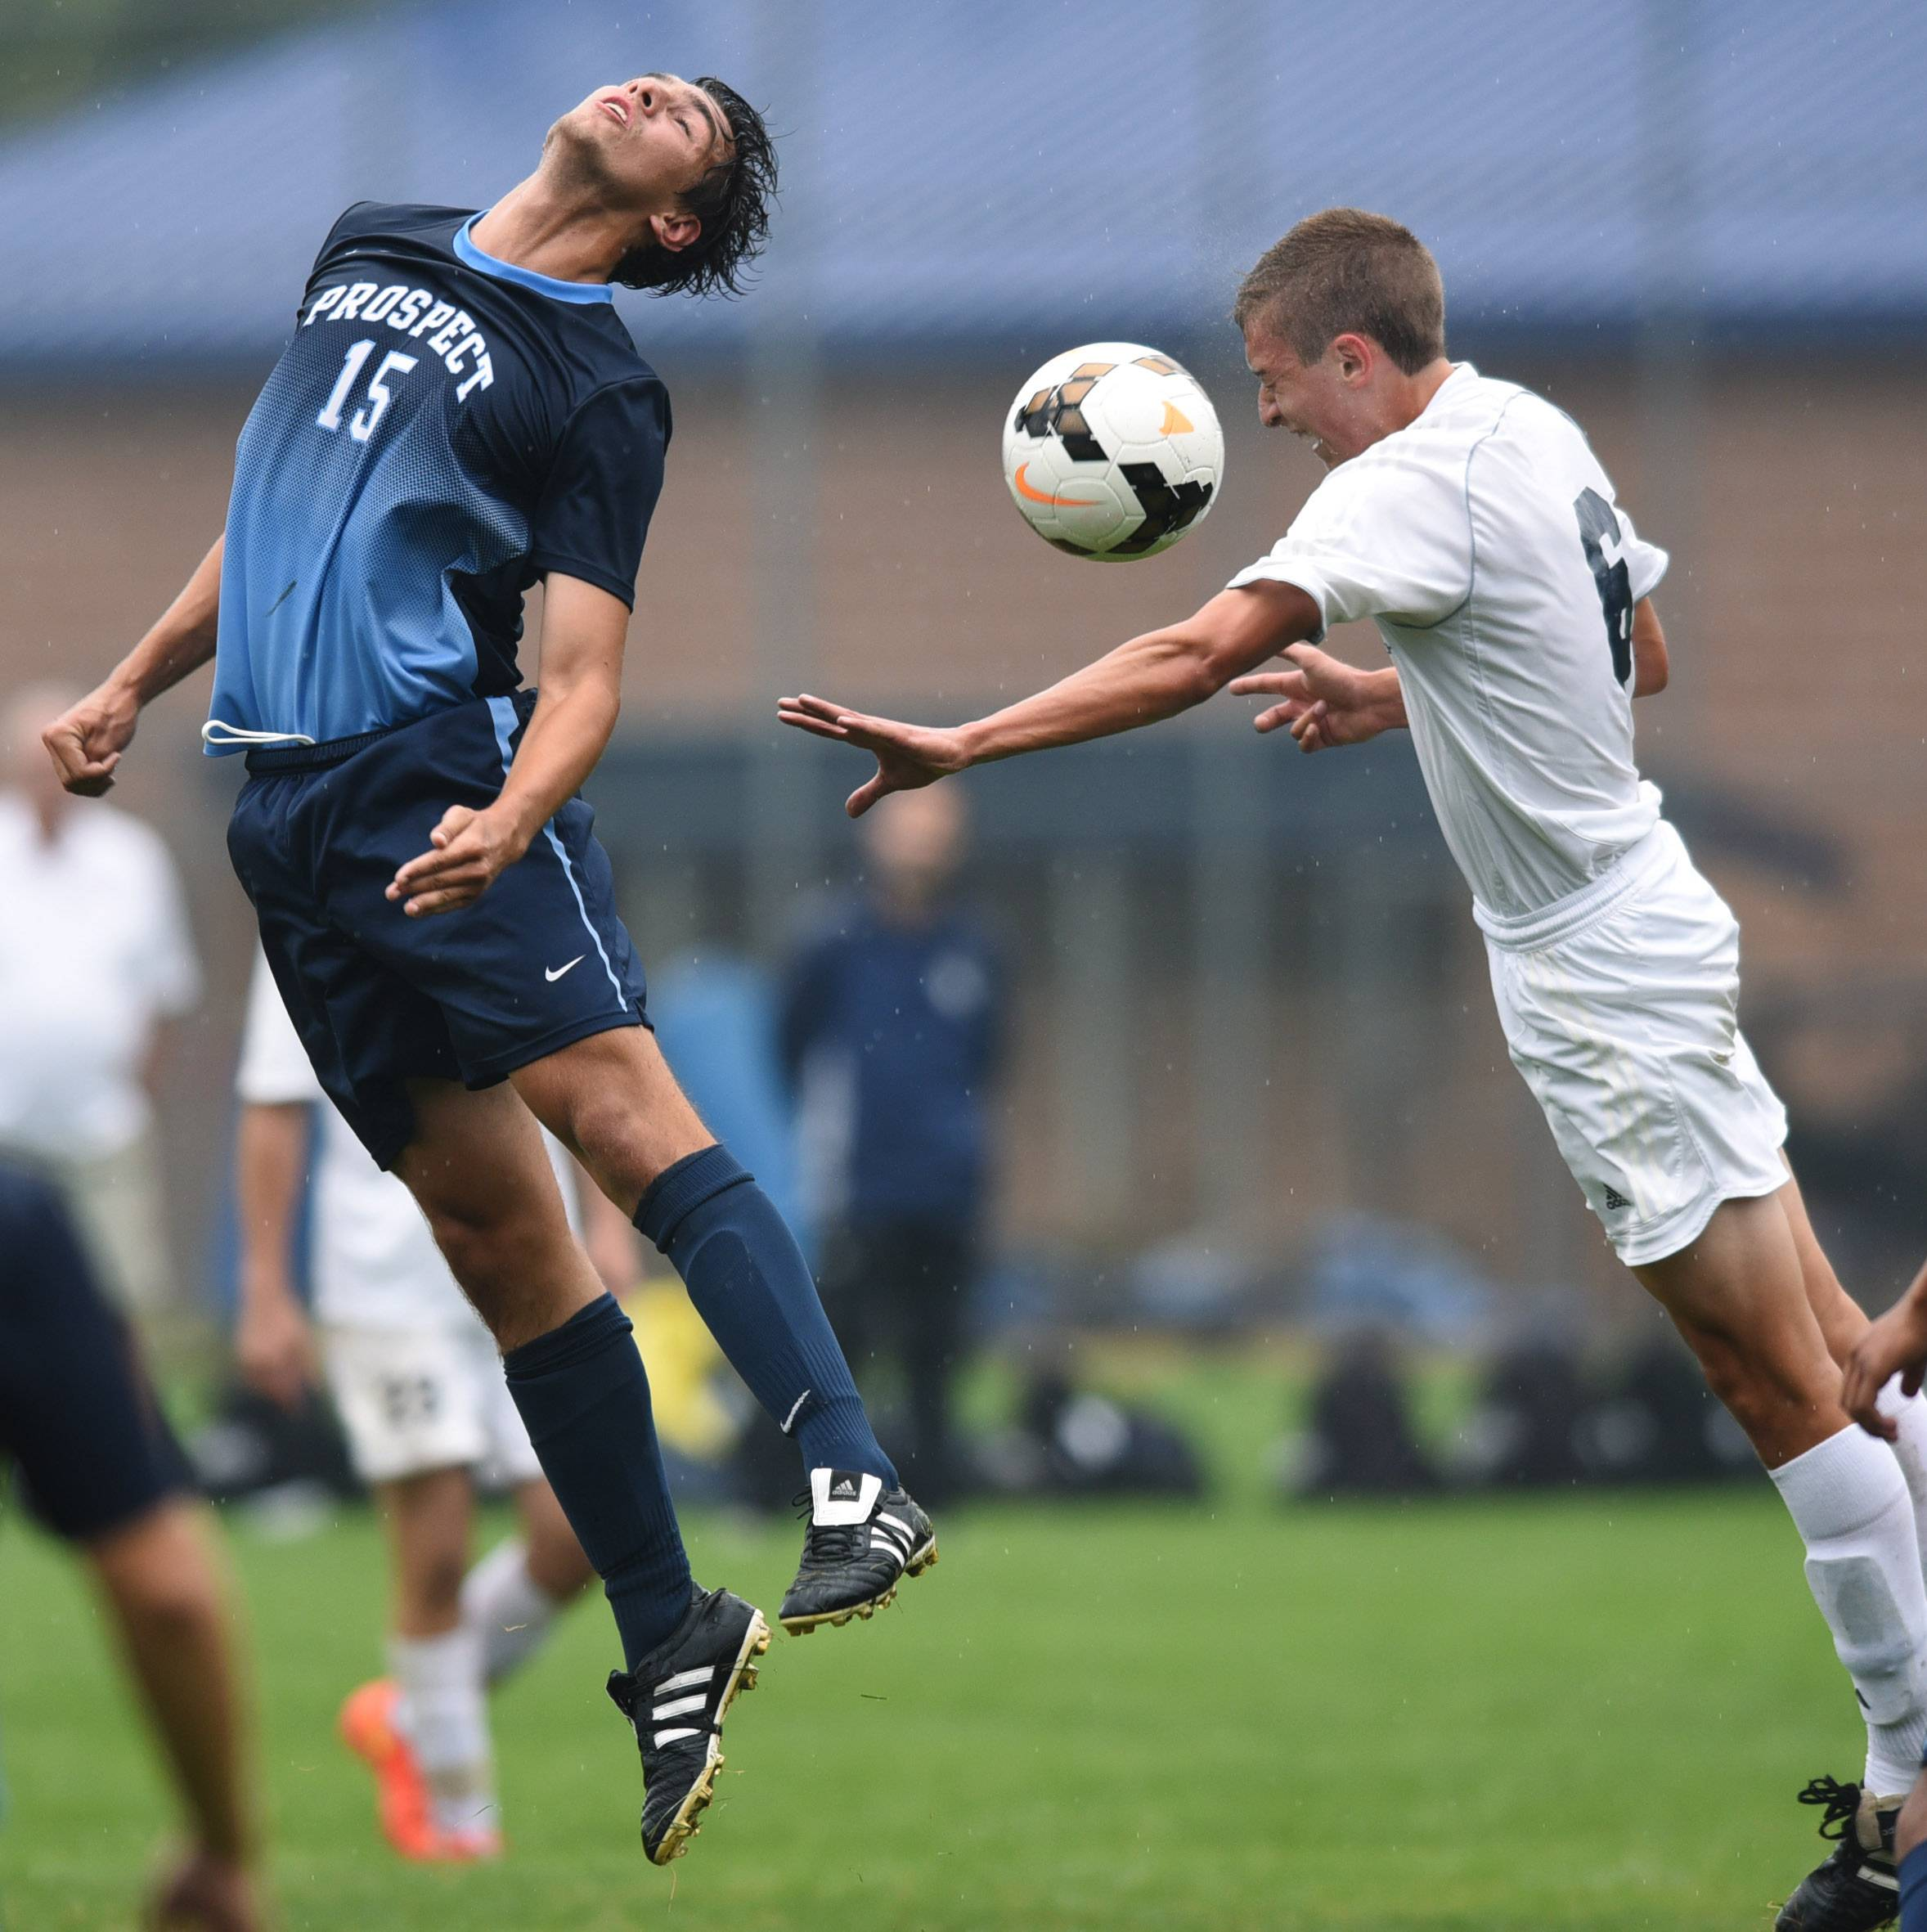 Prospect's Eryk Soltys, left, and St. Viator's Miles McDonnell try to direct the ball with a header during Saturday's game in Arlington Heights.